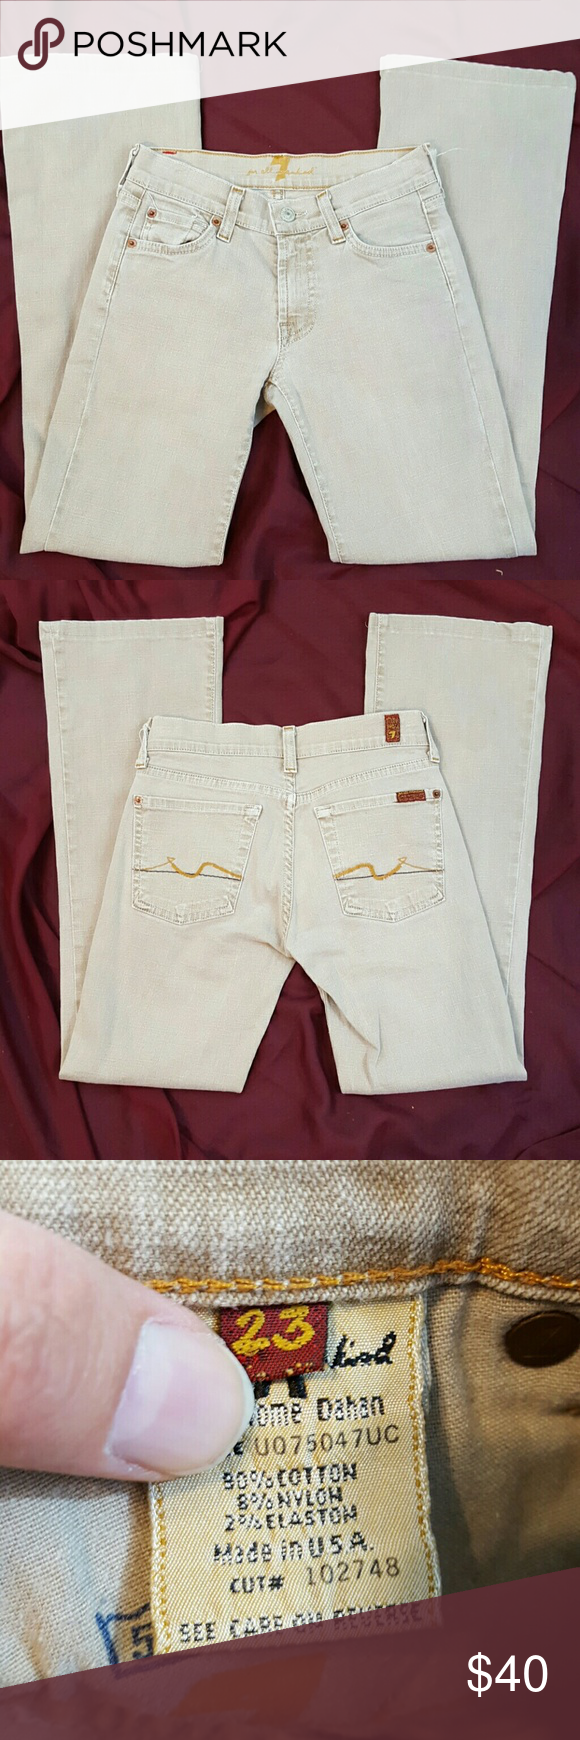 817d827624345 7 for All Mankind Jean's Excellent condition. Size 23 which is equal to a 00